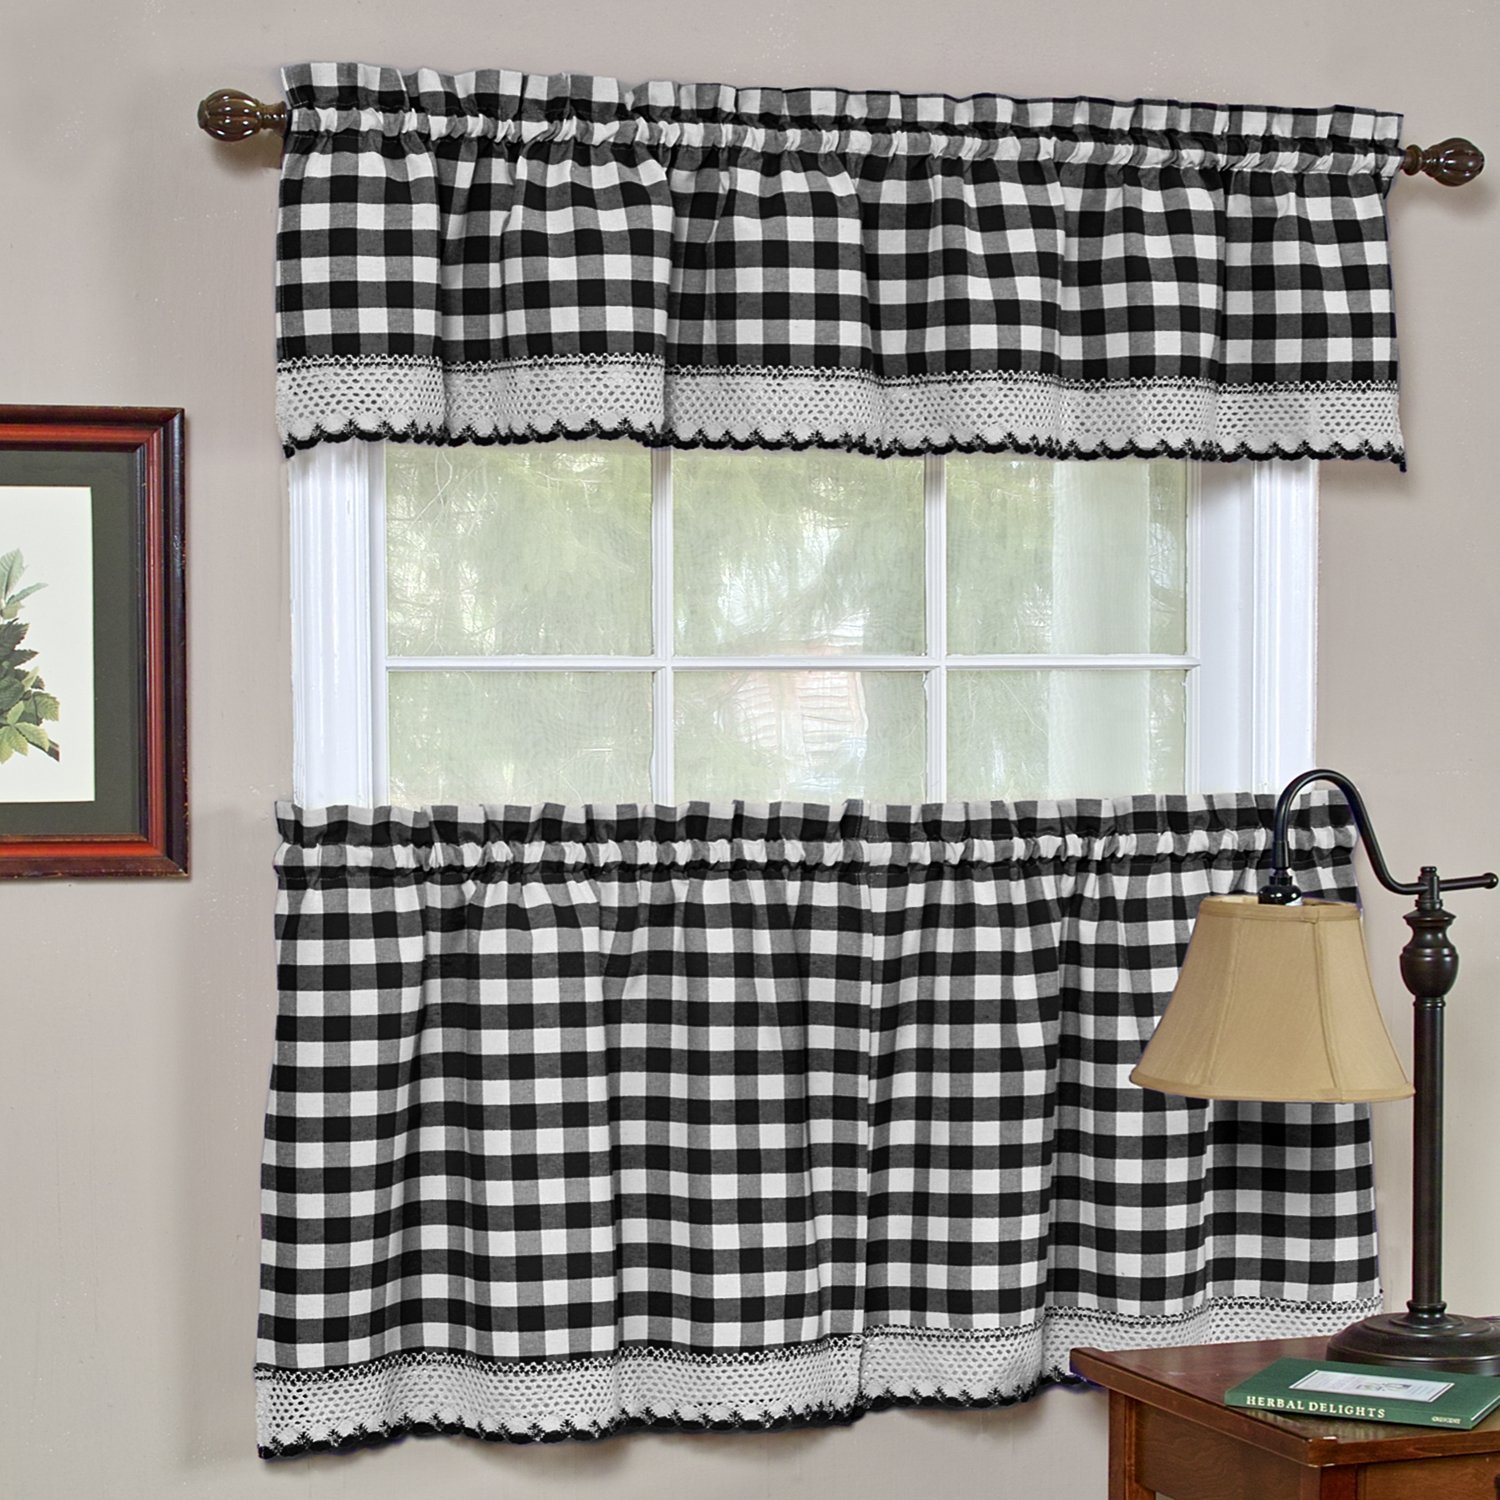 Navy Blue Plaid Checked Homespun Country Kitchen Window Topper Curtain Valance For Sale Online Ebay